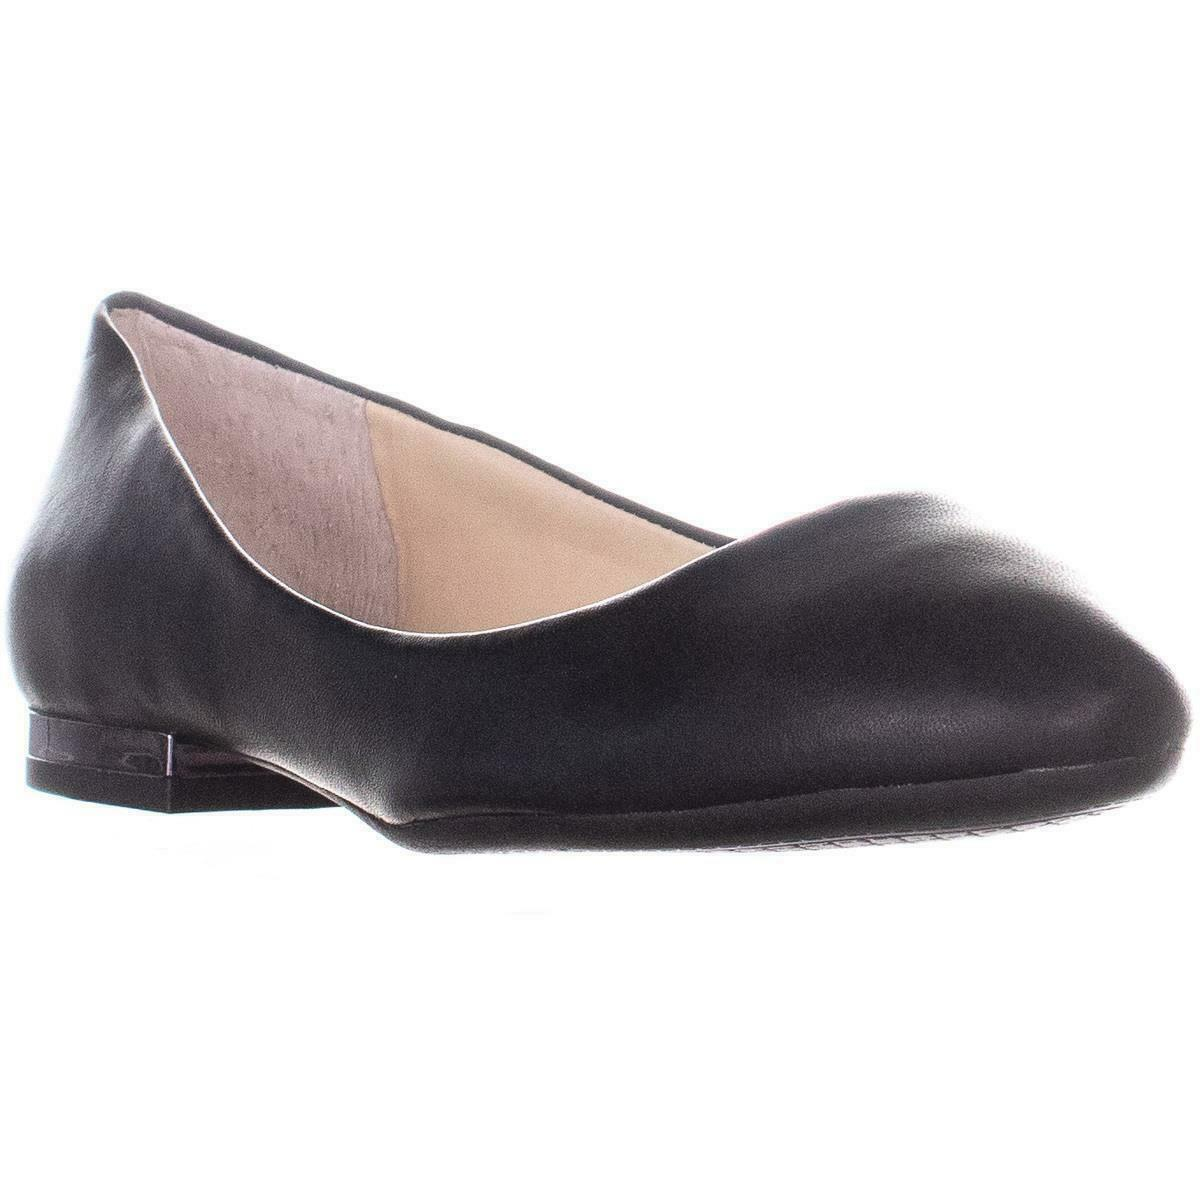 Jessica Simpson Ginly Flats, Black - $31.67 - $45.11